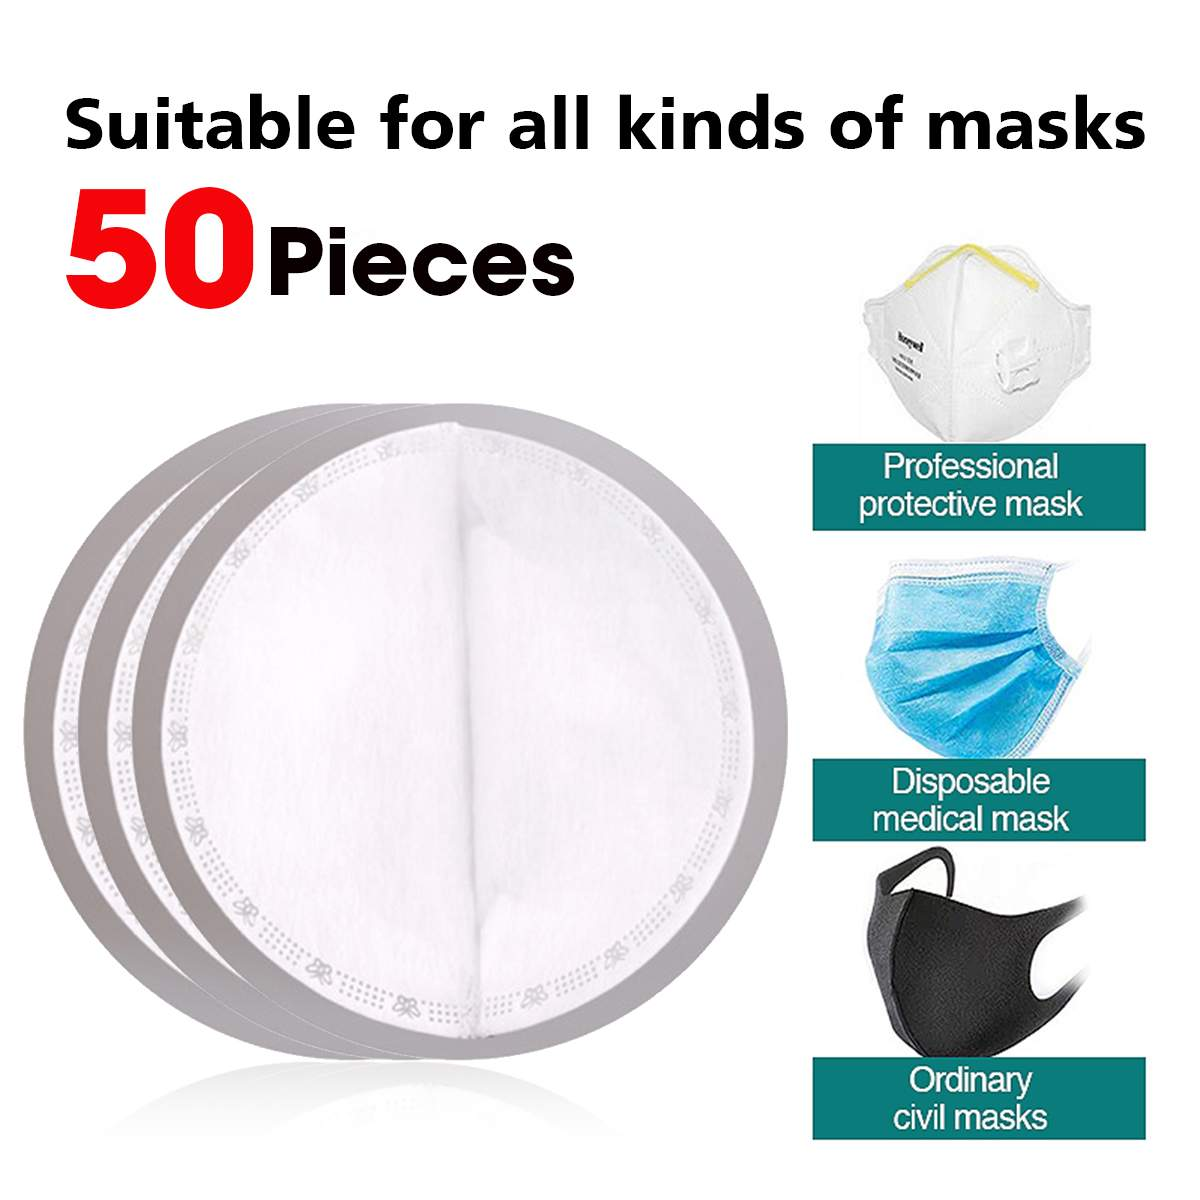 50Pcs Masks Gasket Disposable Anti-Dust 3-layer Melt-blown Cloth Replacement Mask Pads For kf94 N95 KN95 All Face Masks 1